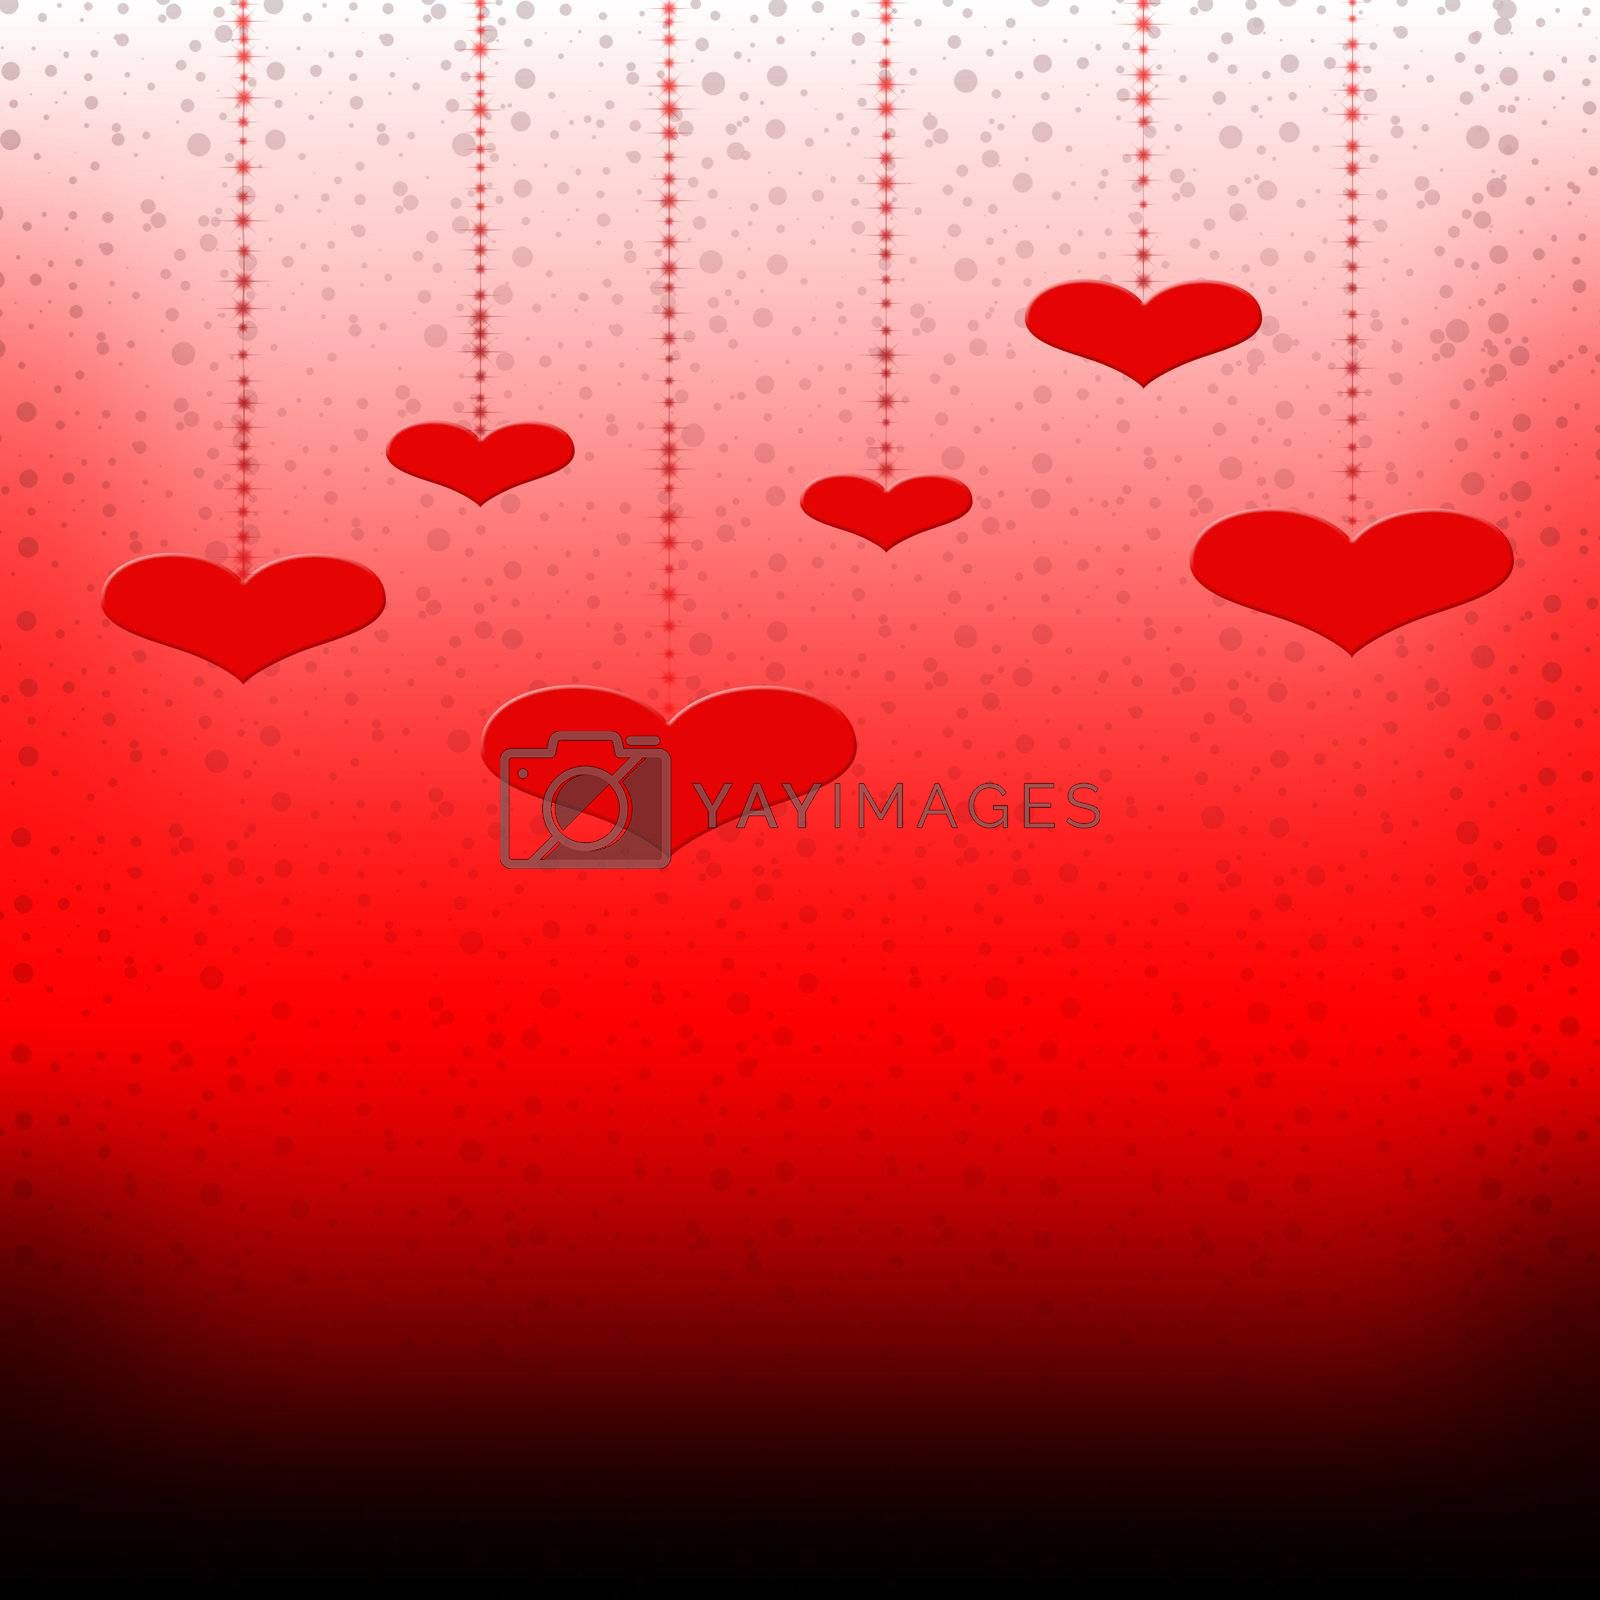 Valentines Day background with Hearts for valentines day